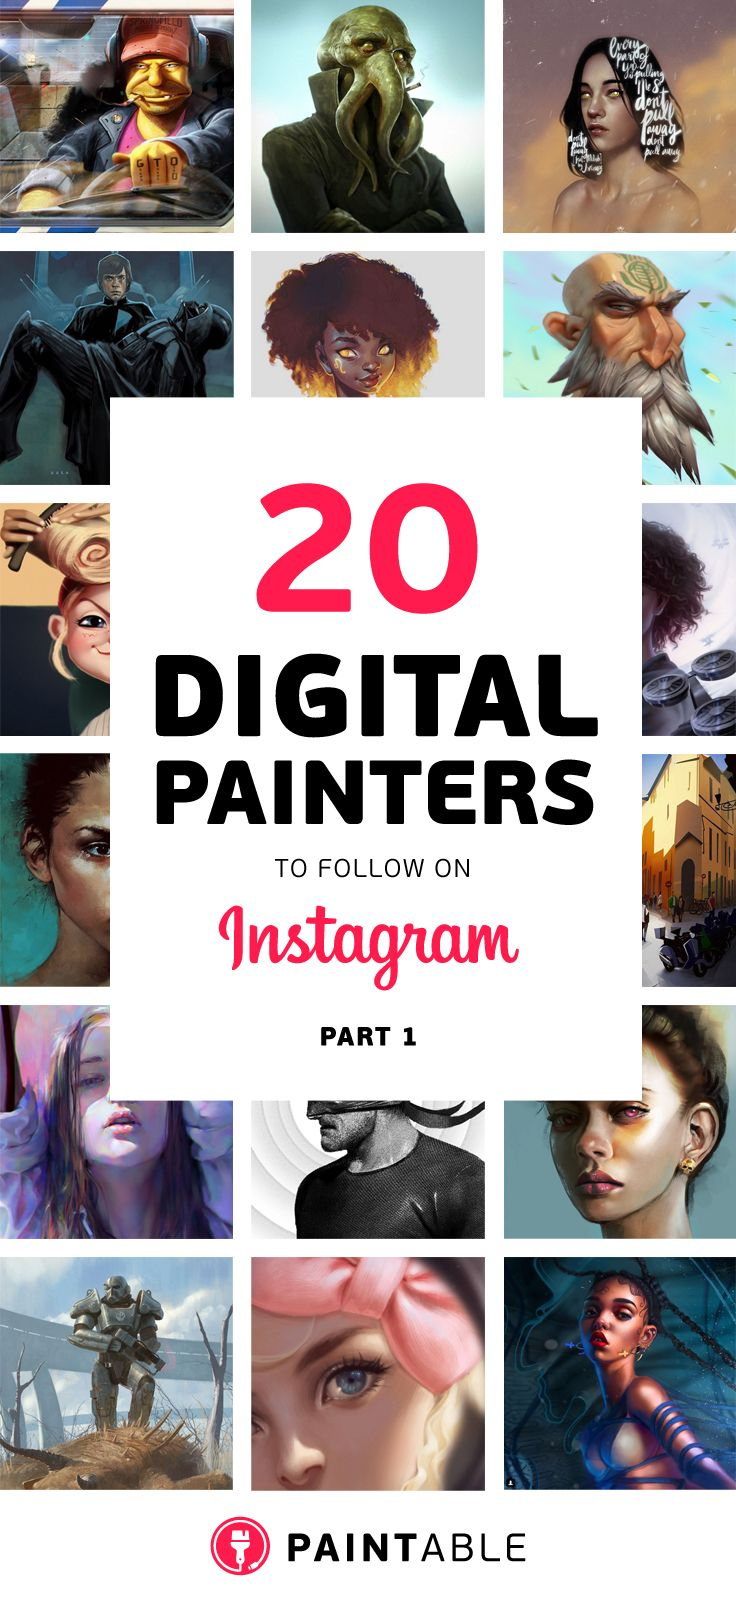 www.paintable.cc | 20 Inspiring Digital Painters to Follow on Instagram (Part 1)